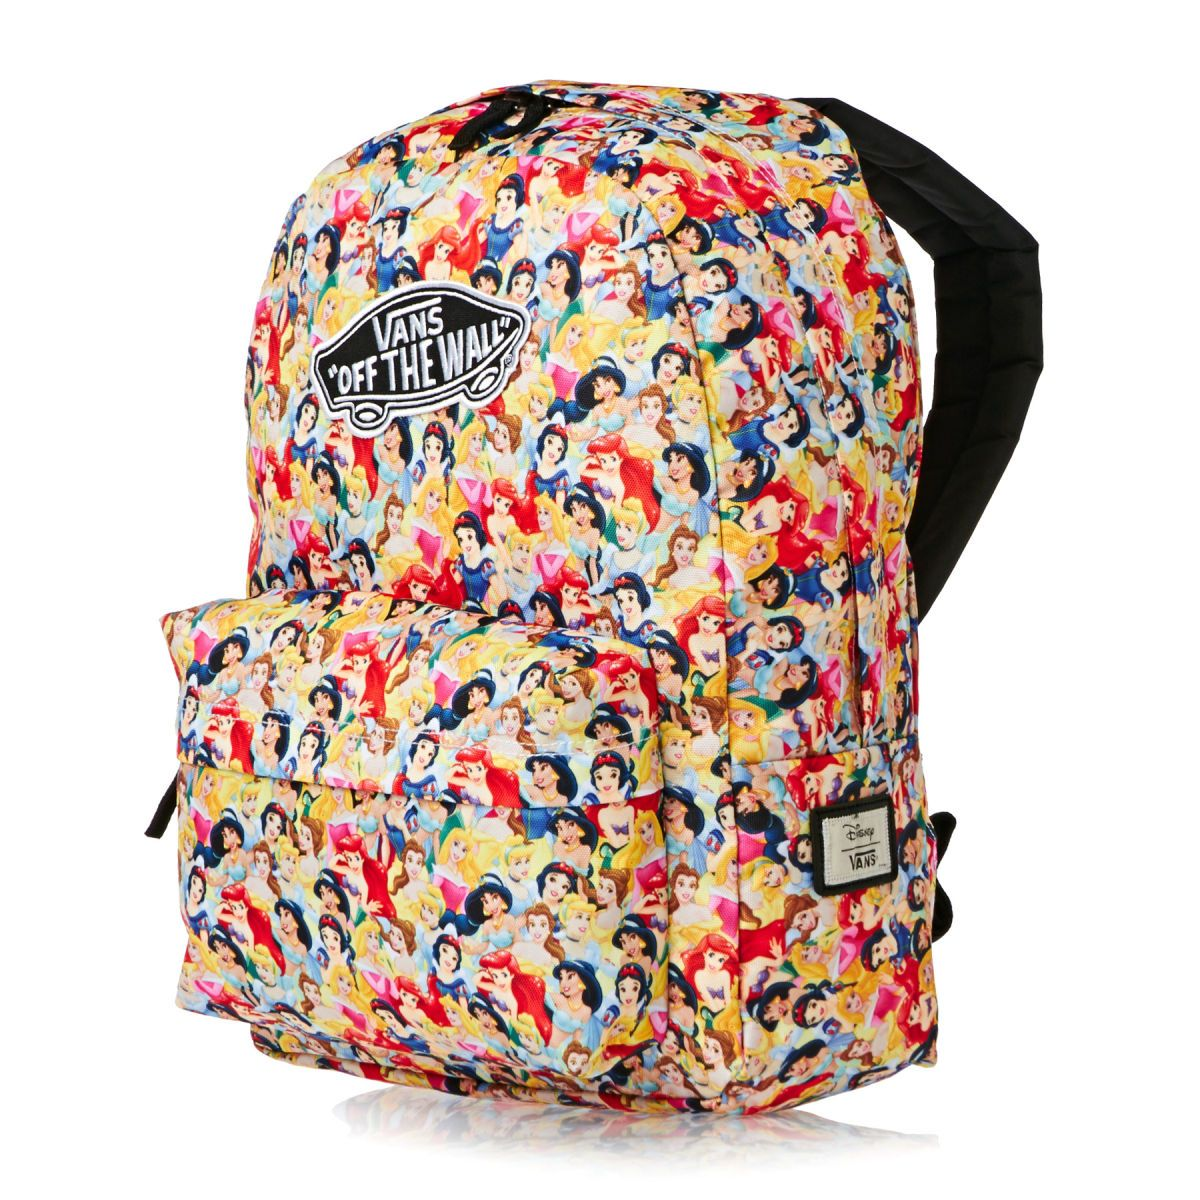 d2d38bb8d4e3e9 Does anyone know where I can get this bag  Been looking everywhere and cant  seem to find it. Help would be appreciated!  )  Vans  Disney